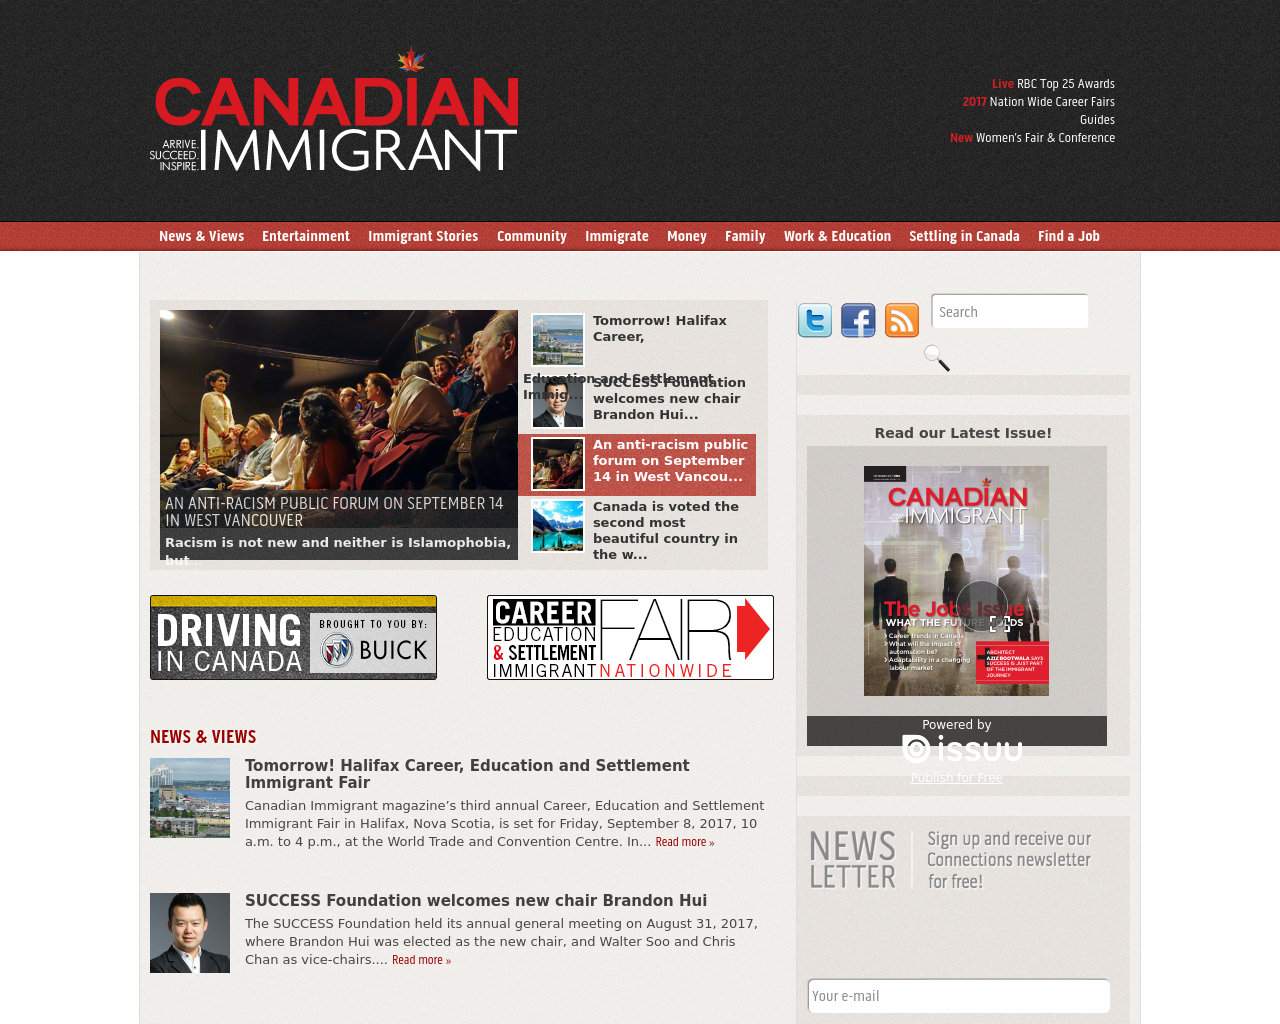 Canadian-Immigrant-Advertising-Reviews-Pricing